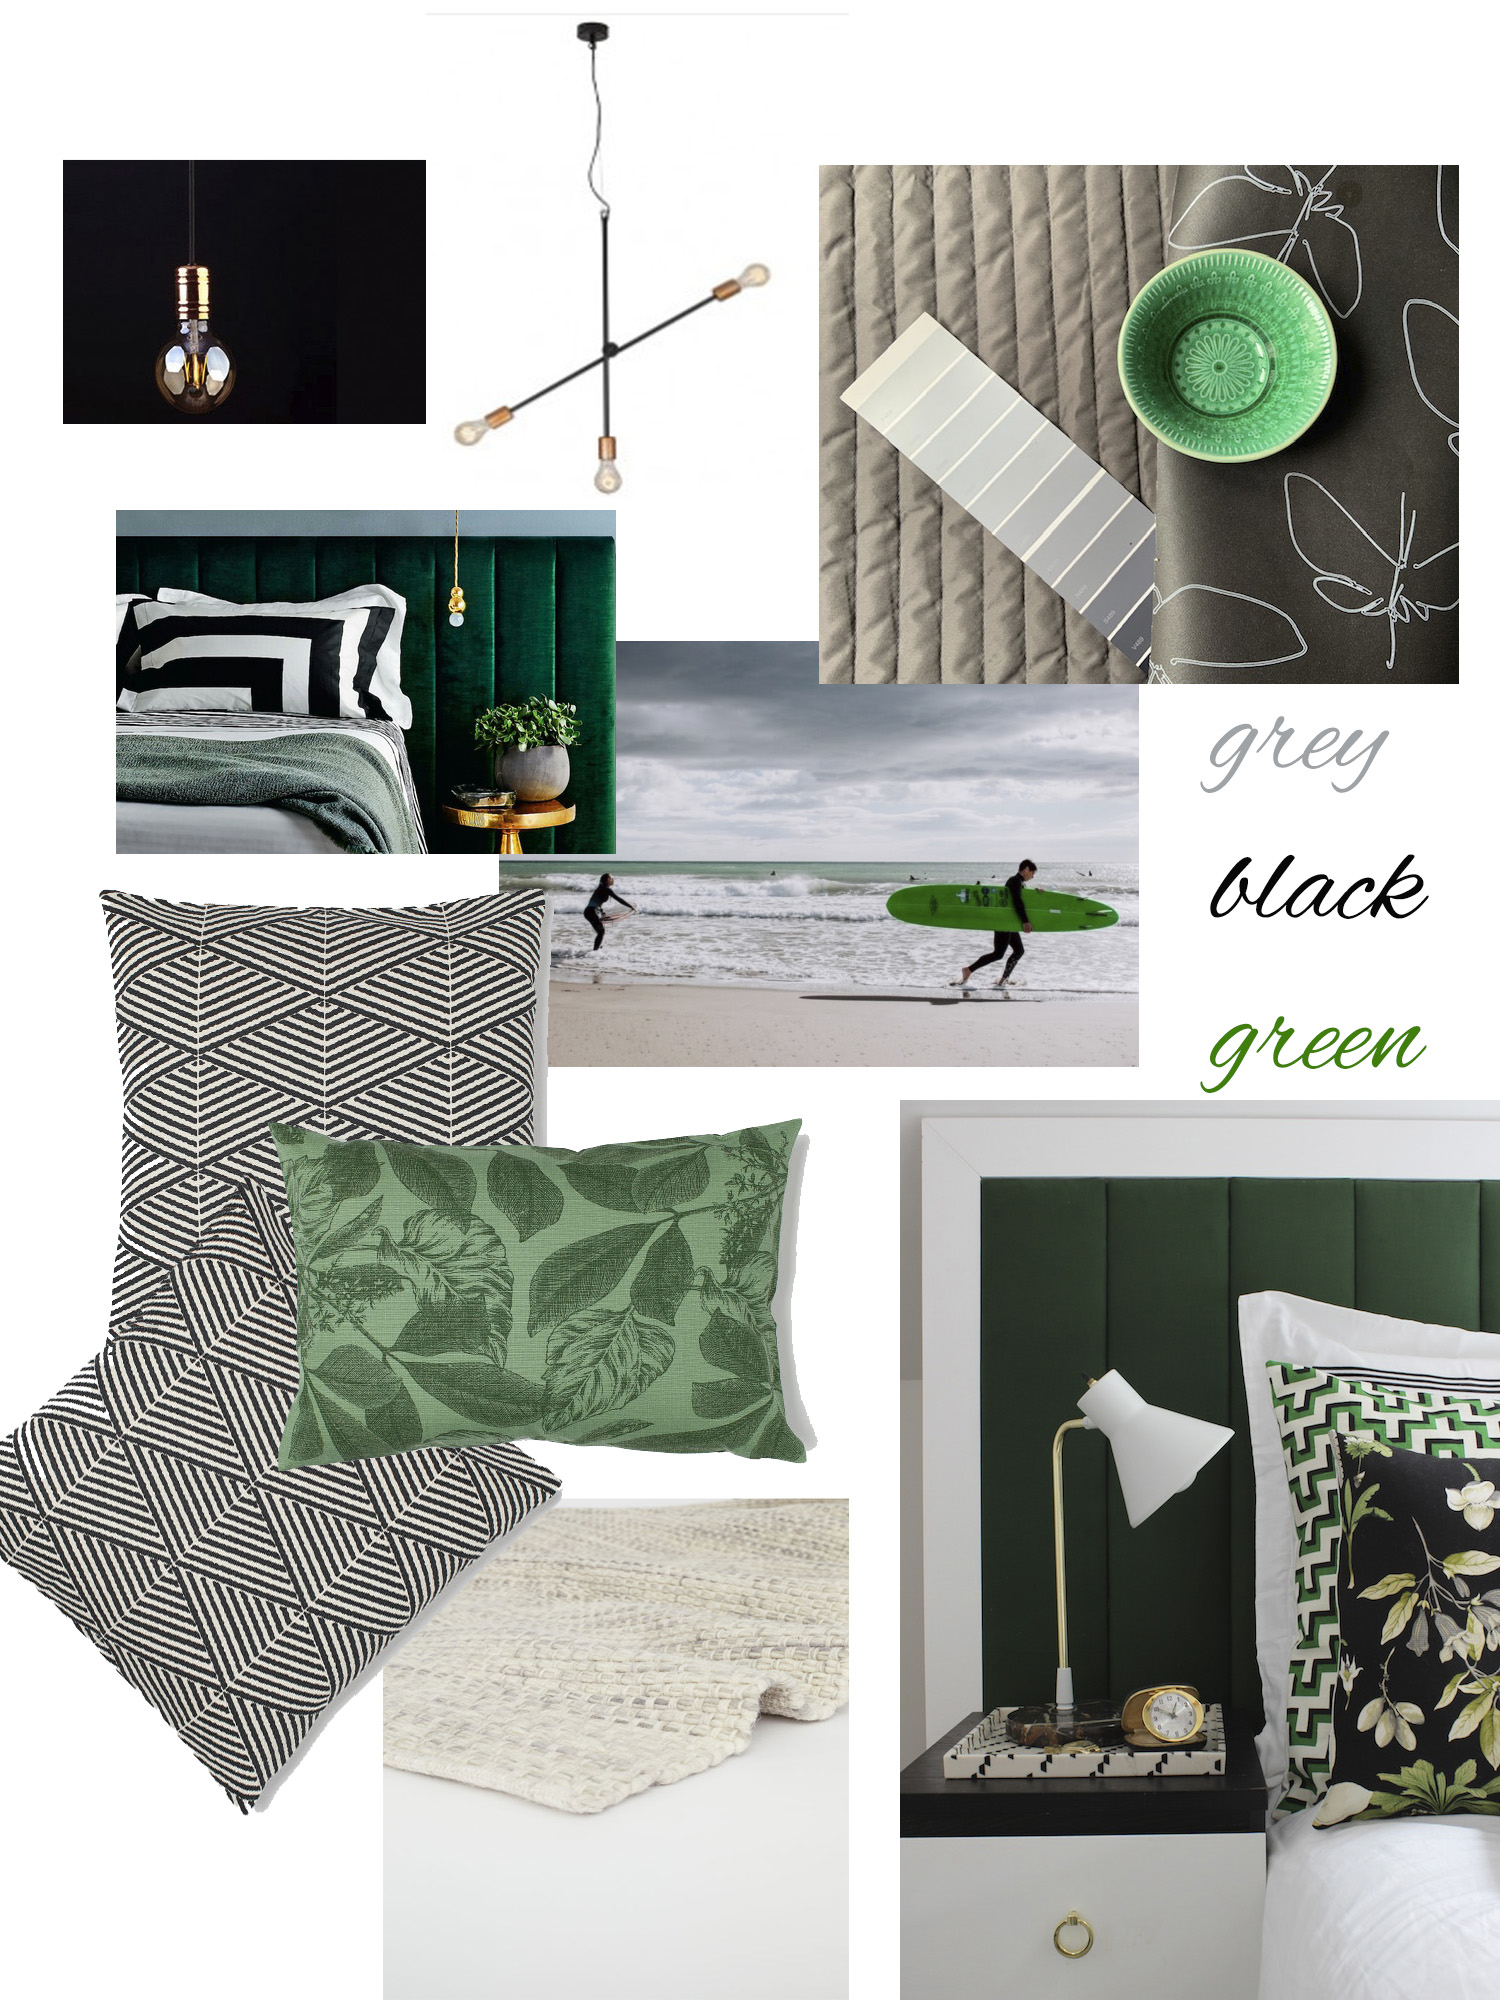 Moodboard for the guest room.